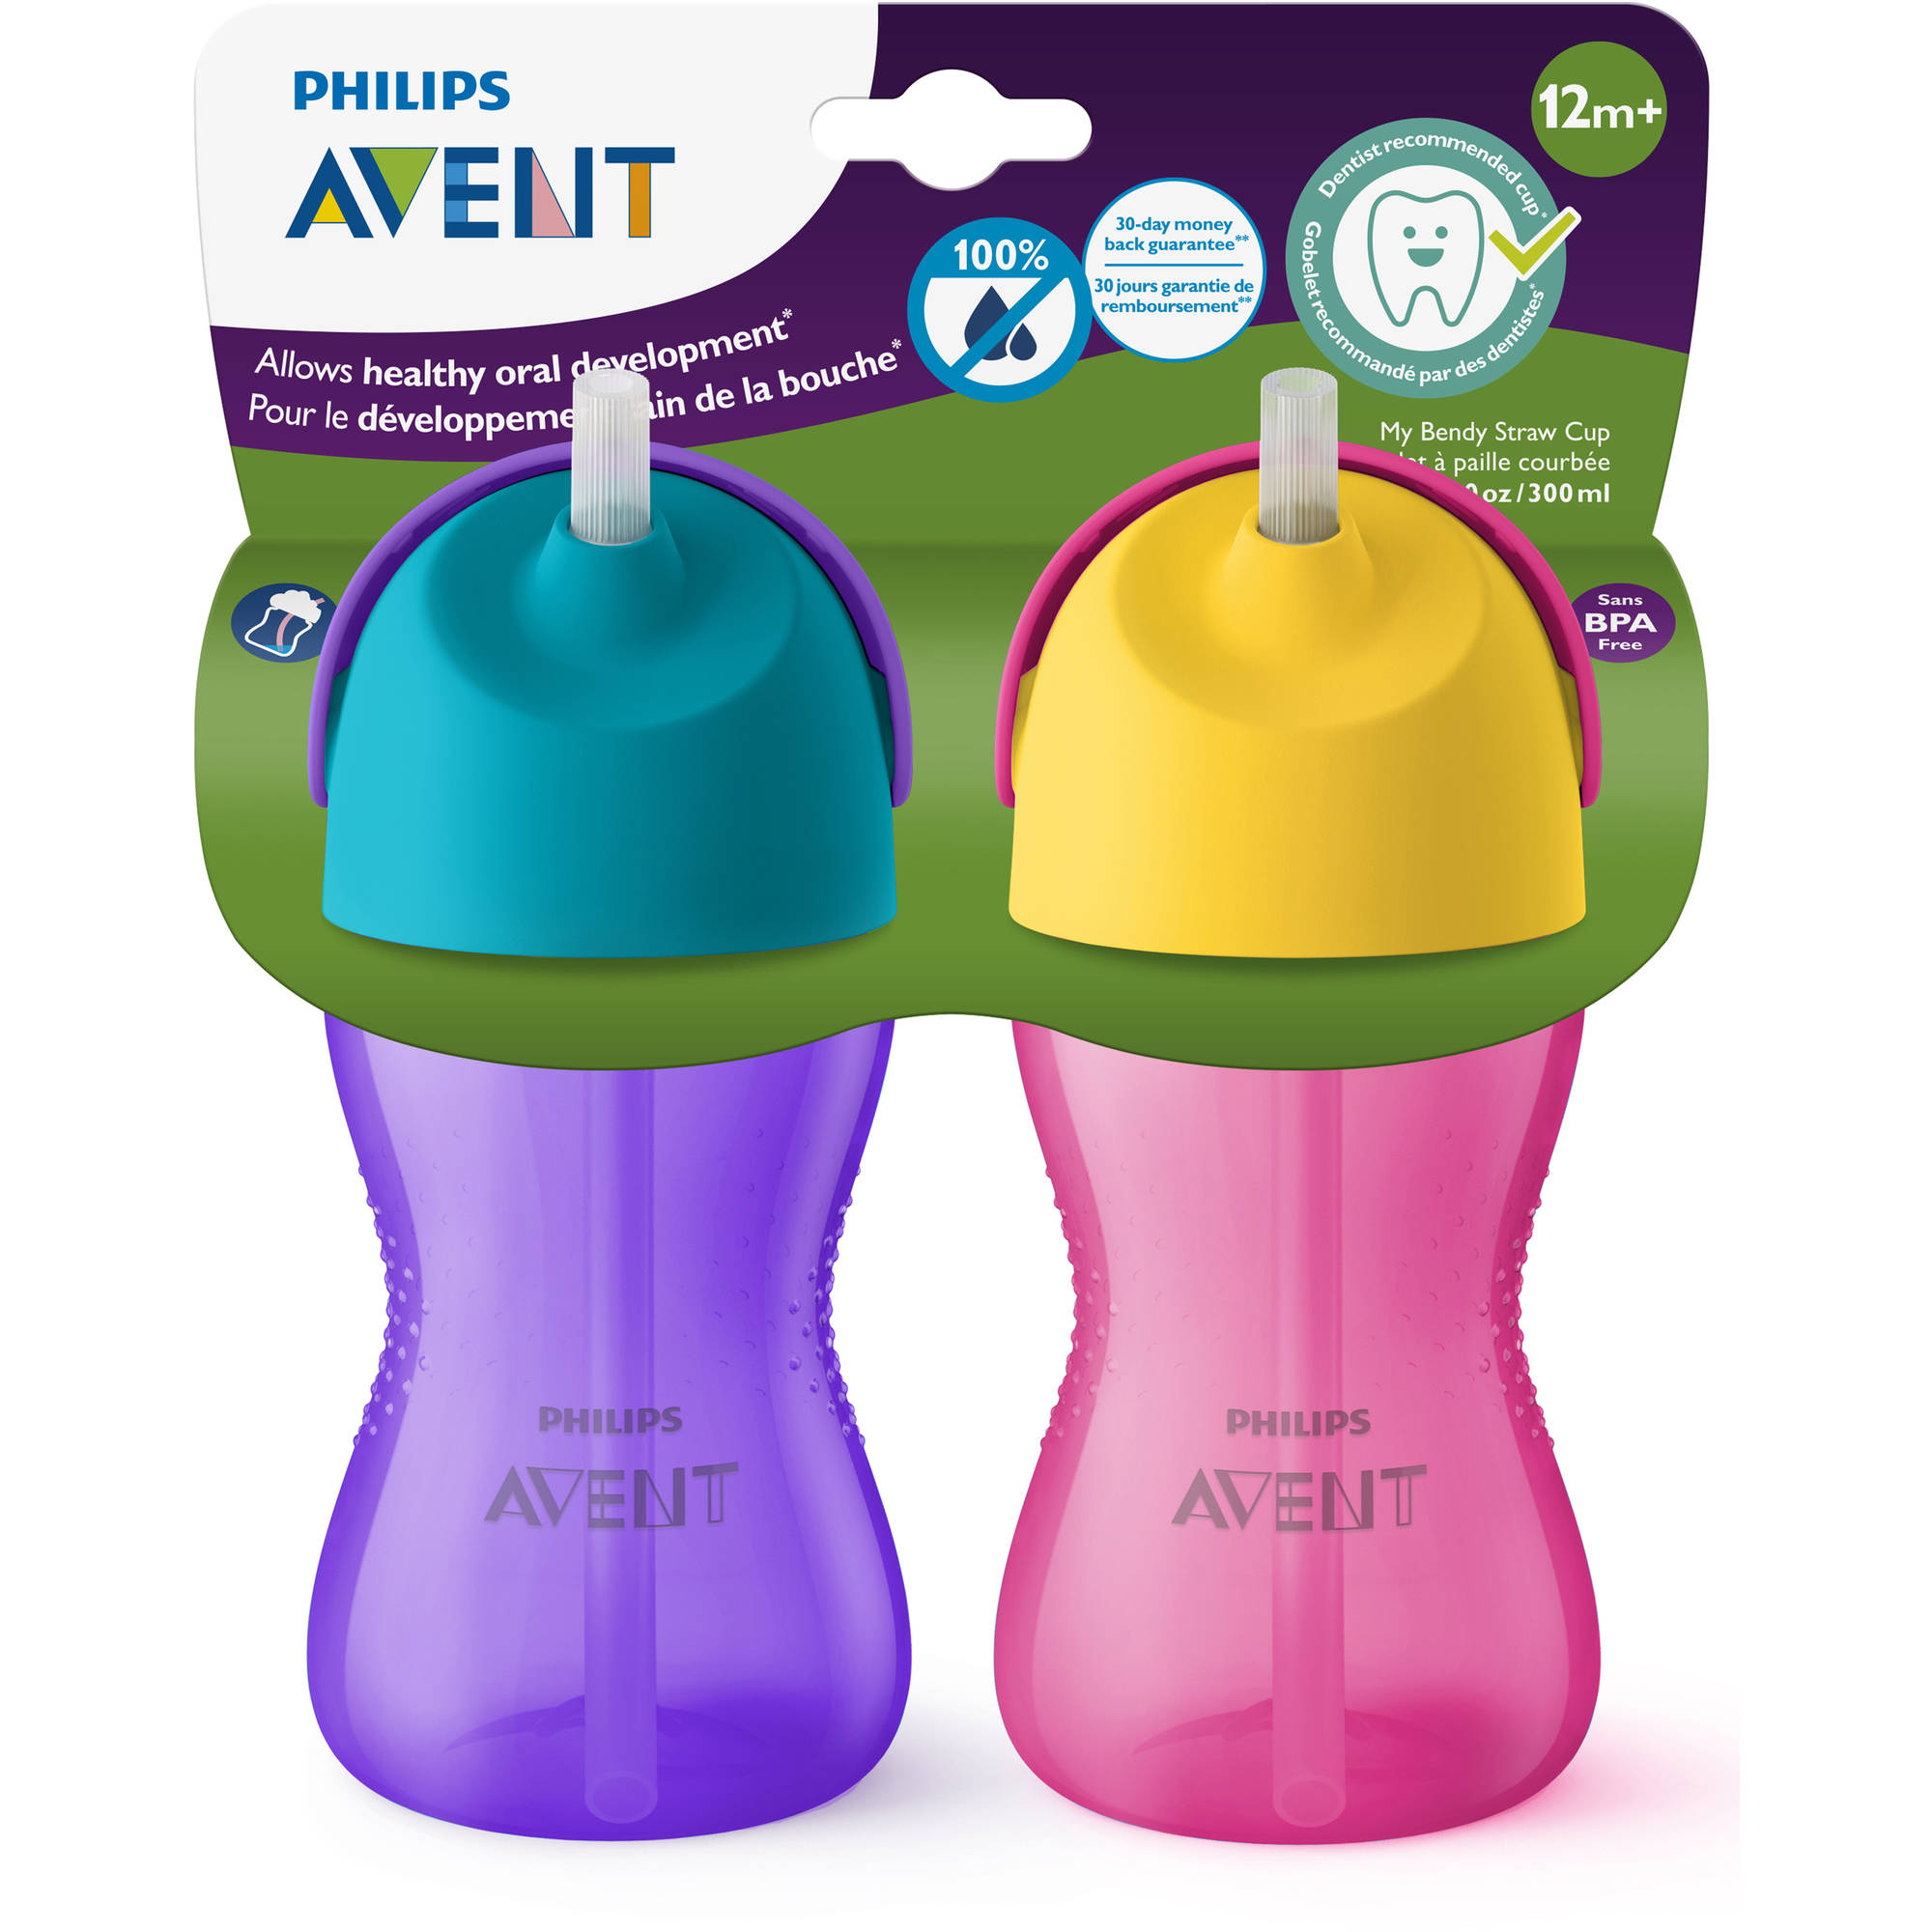 Image result for avent kids clothing